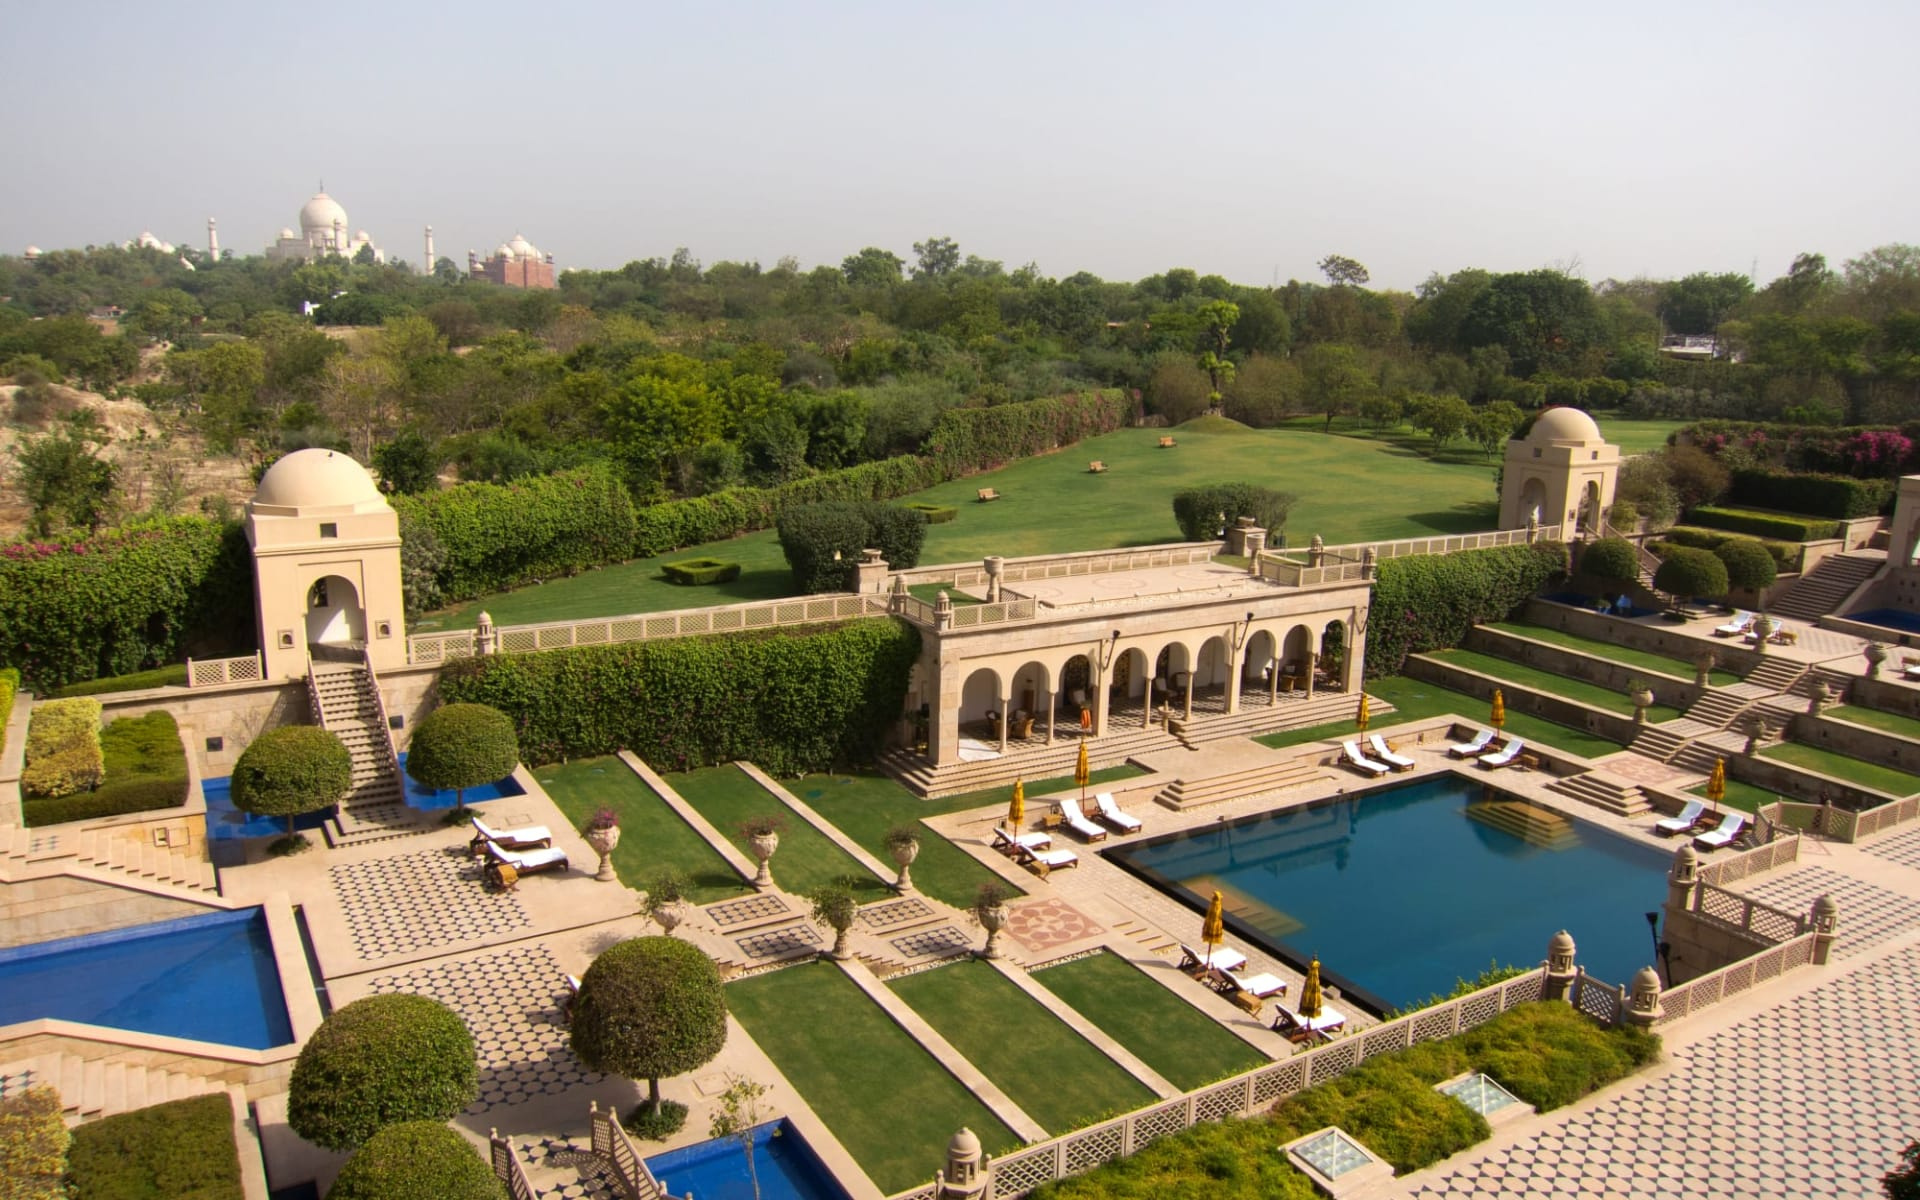 The Oberoi Amarvilas in Agra: Overview